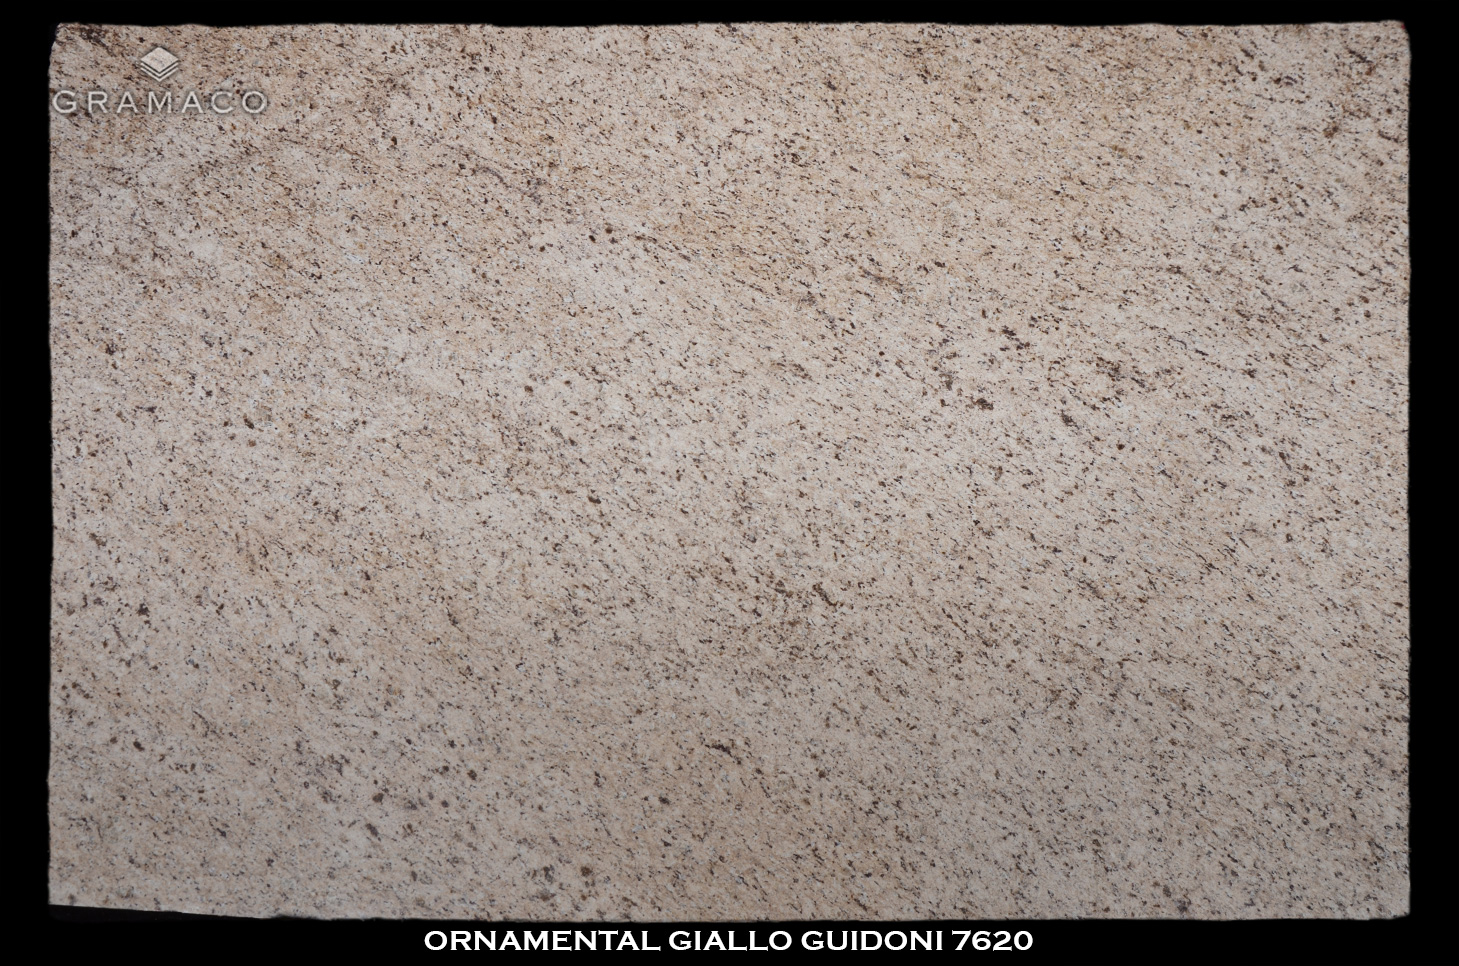 ORNAMENTAL-GIALLO-GUIDONI-7620---FULL-SLAB-BLACK